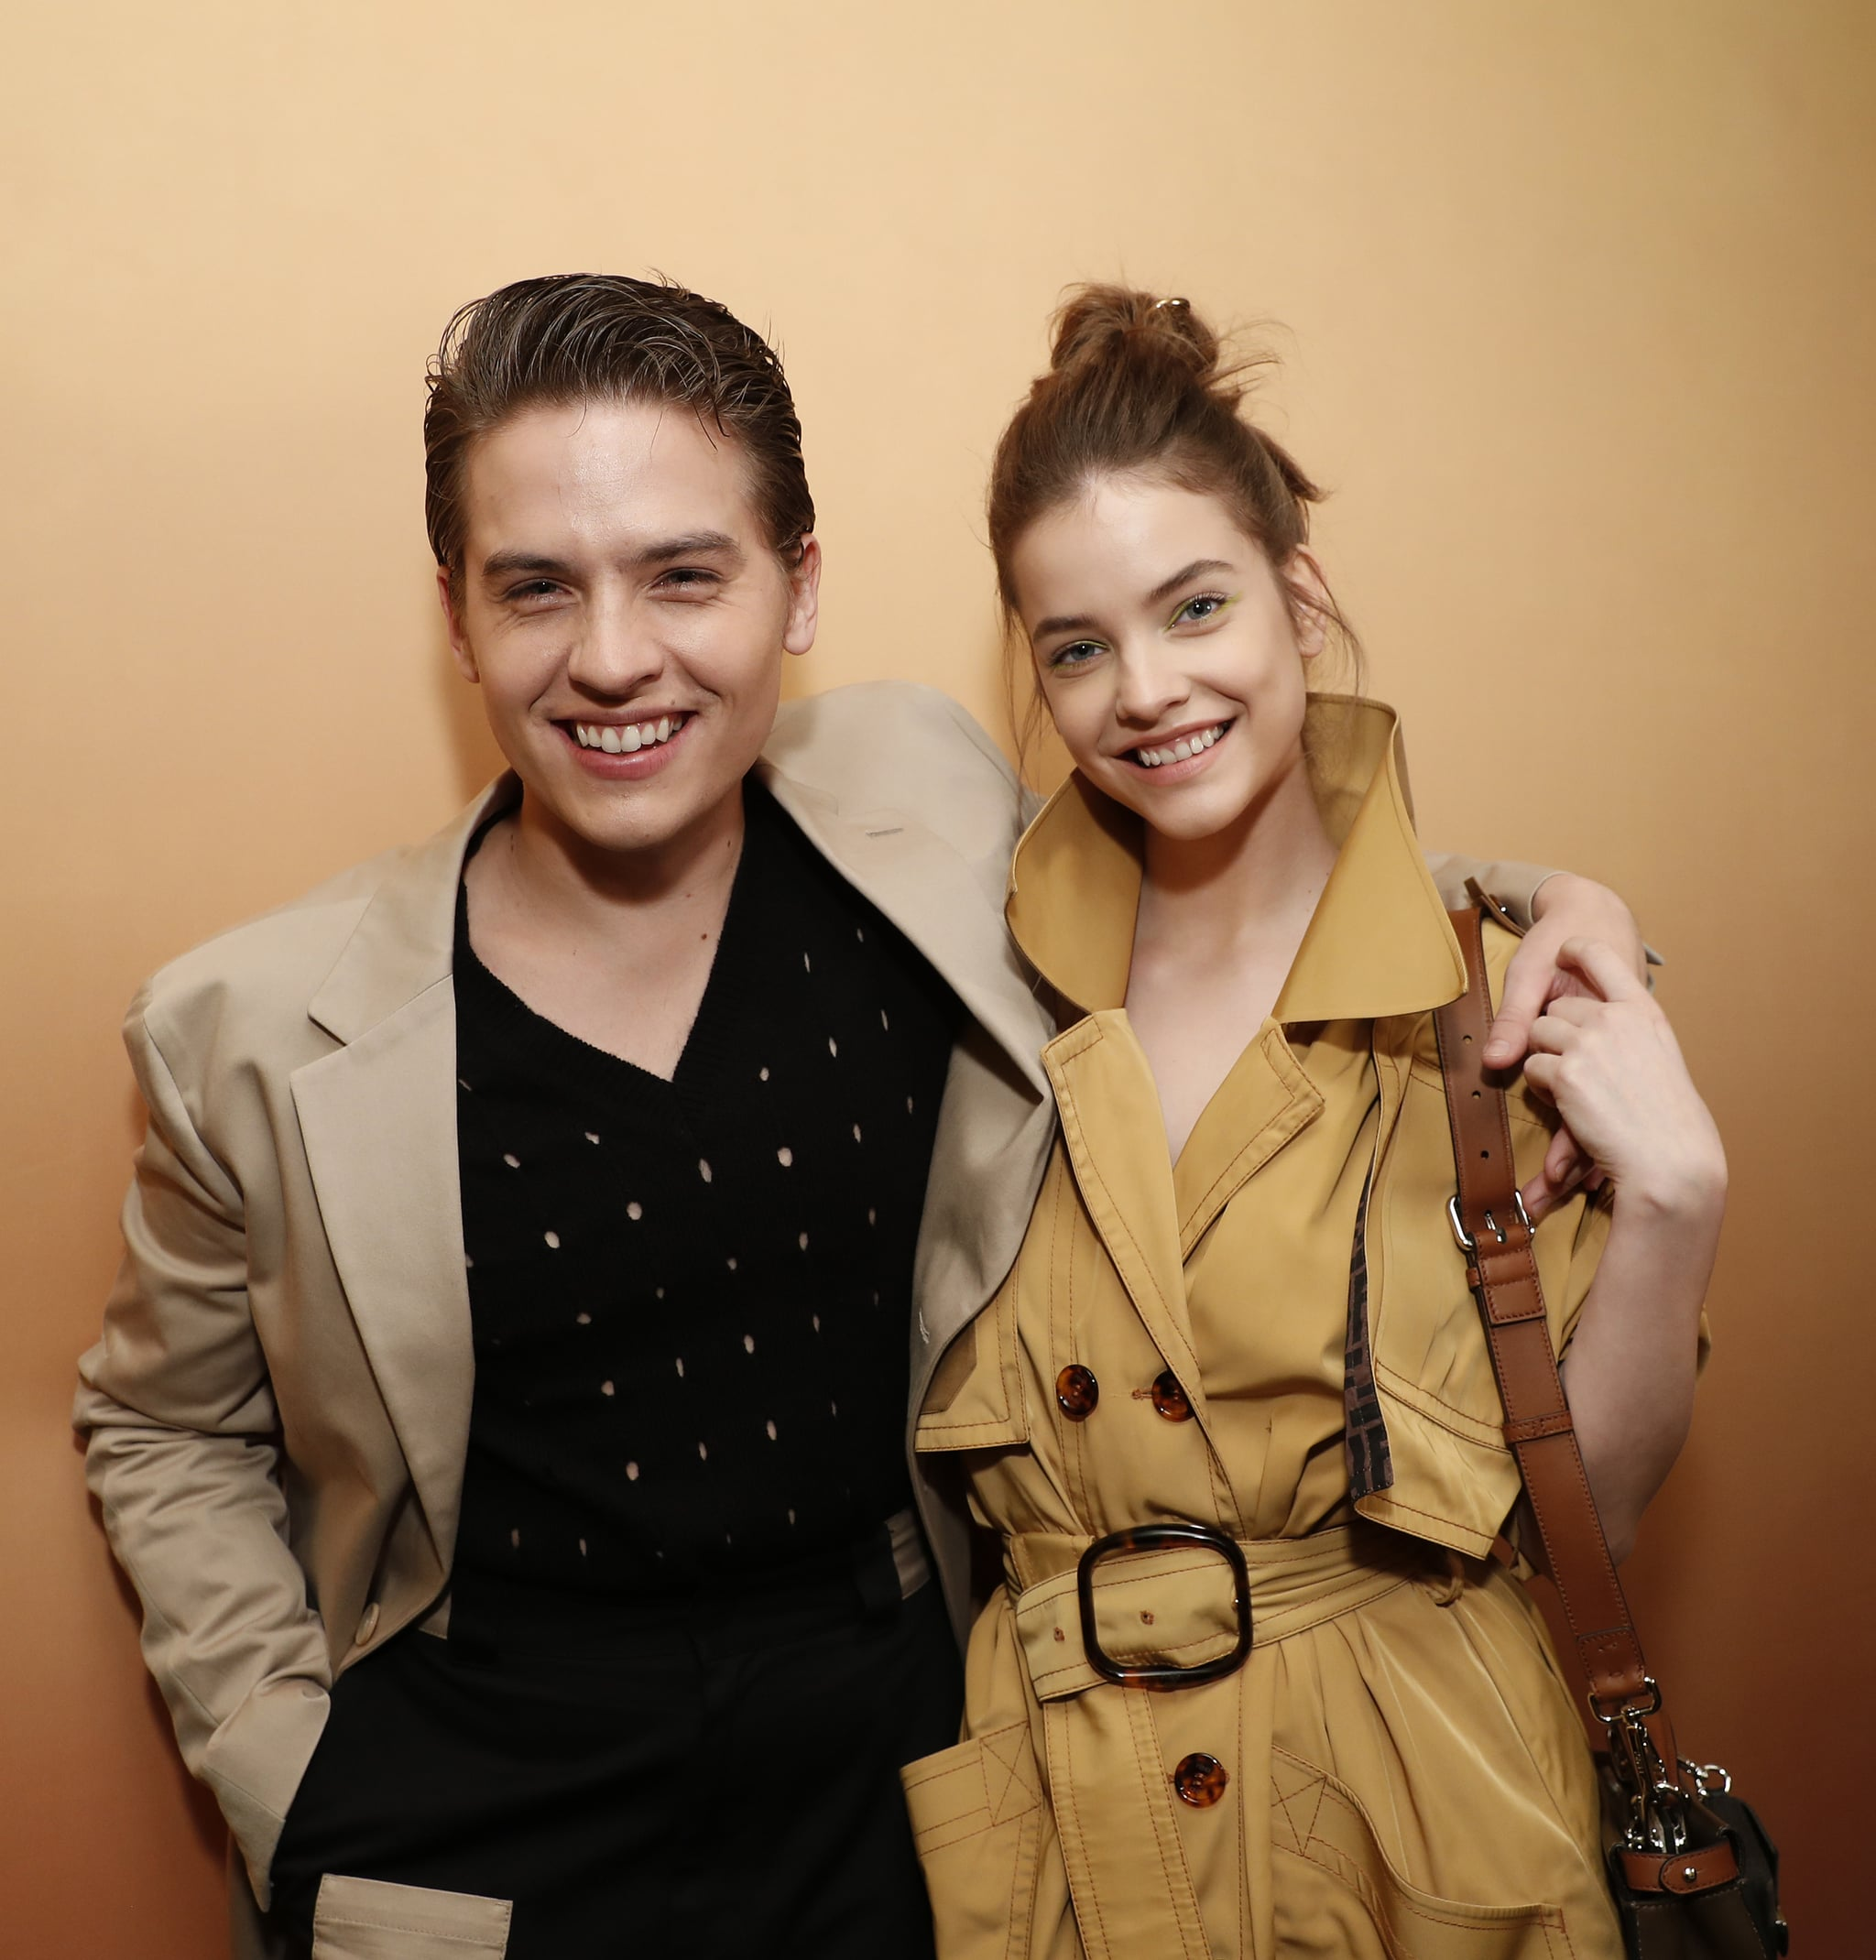 NEW YORK, NEW YORK - FEBRUARY 05: Dylan Sprouse and Barbara Palvin attend The Launch of Solar Dream hosted by Fendi on February 05, 2020 in New York City. (Photo by JP Yim/Getty Images for Fendi)